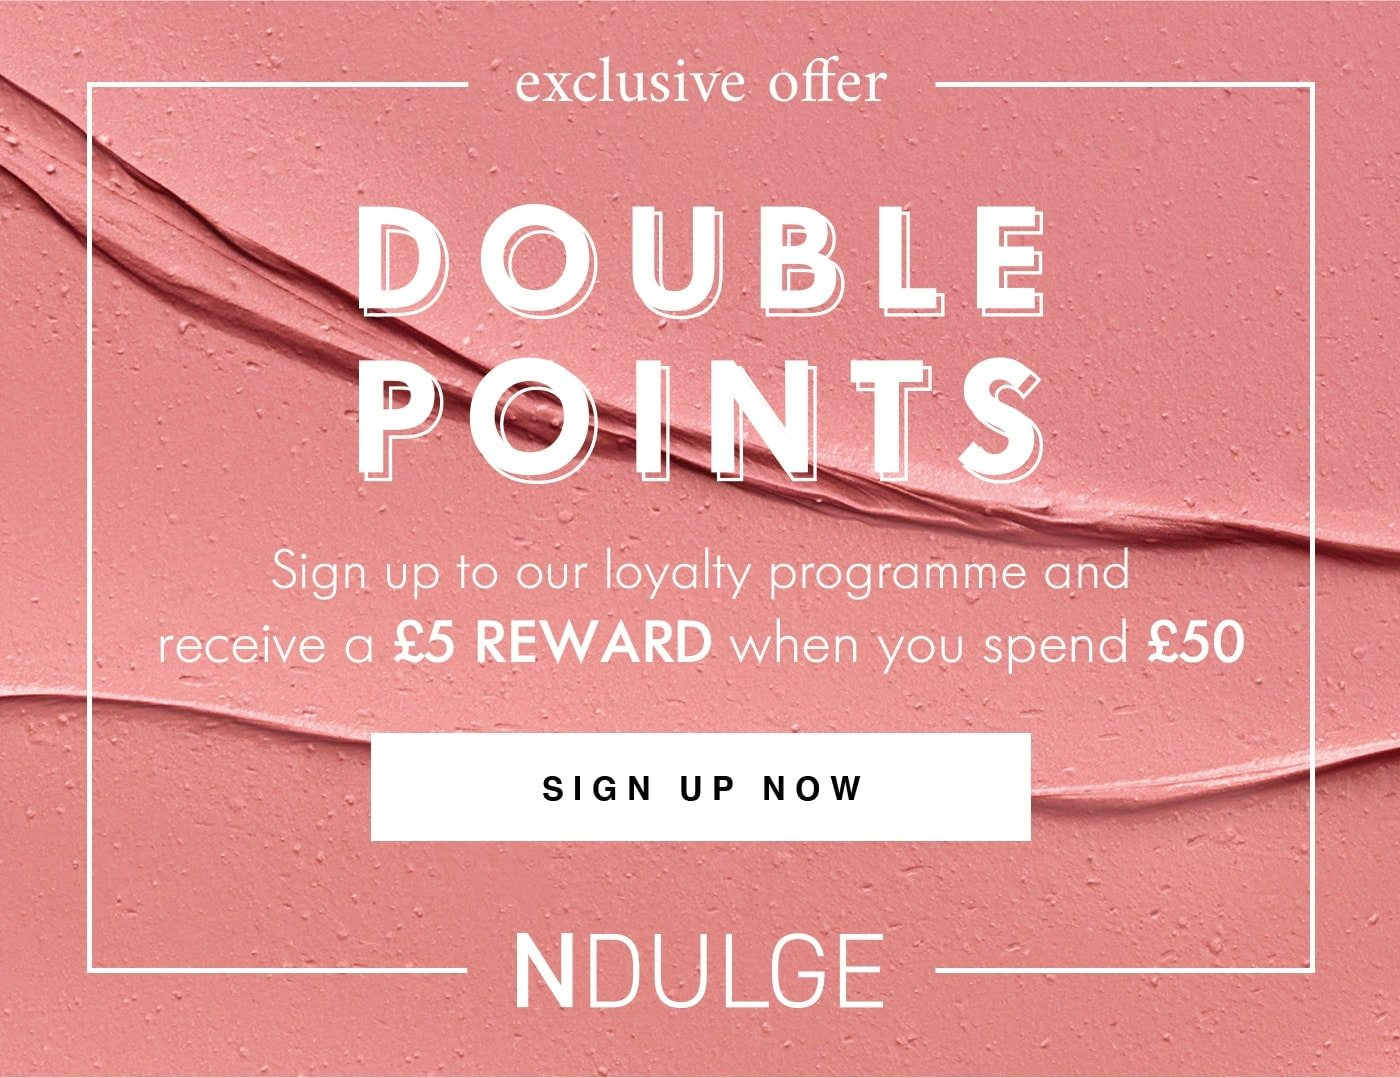 exclusive offer DOUBLE POINTS Sign up to our loyalty programme and receive a £5 REWARD when you spend £50 SIGN UP NOW NDULGE